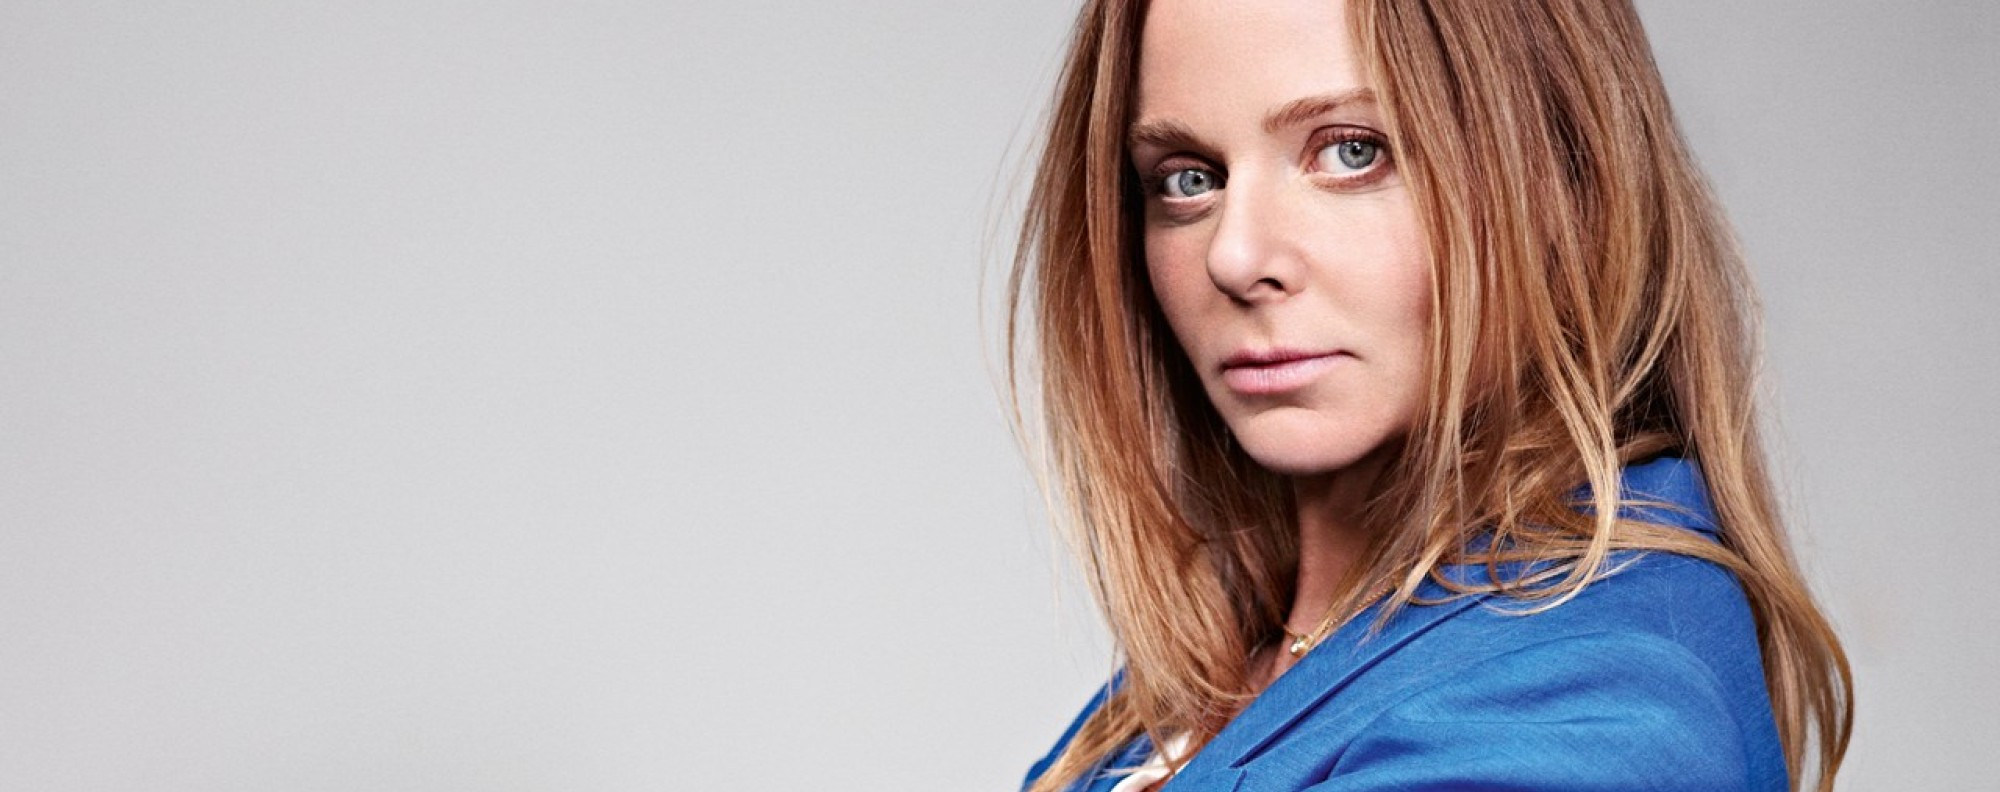 In recent years, Stella McCartney has introduced innovative textiles and business initiatives to boost sustainability.